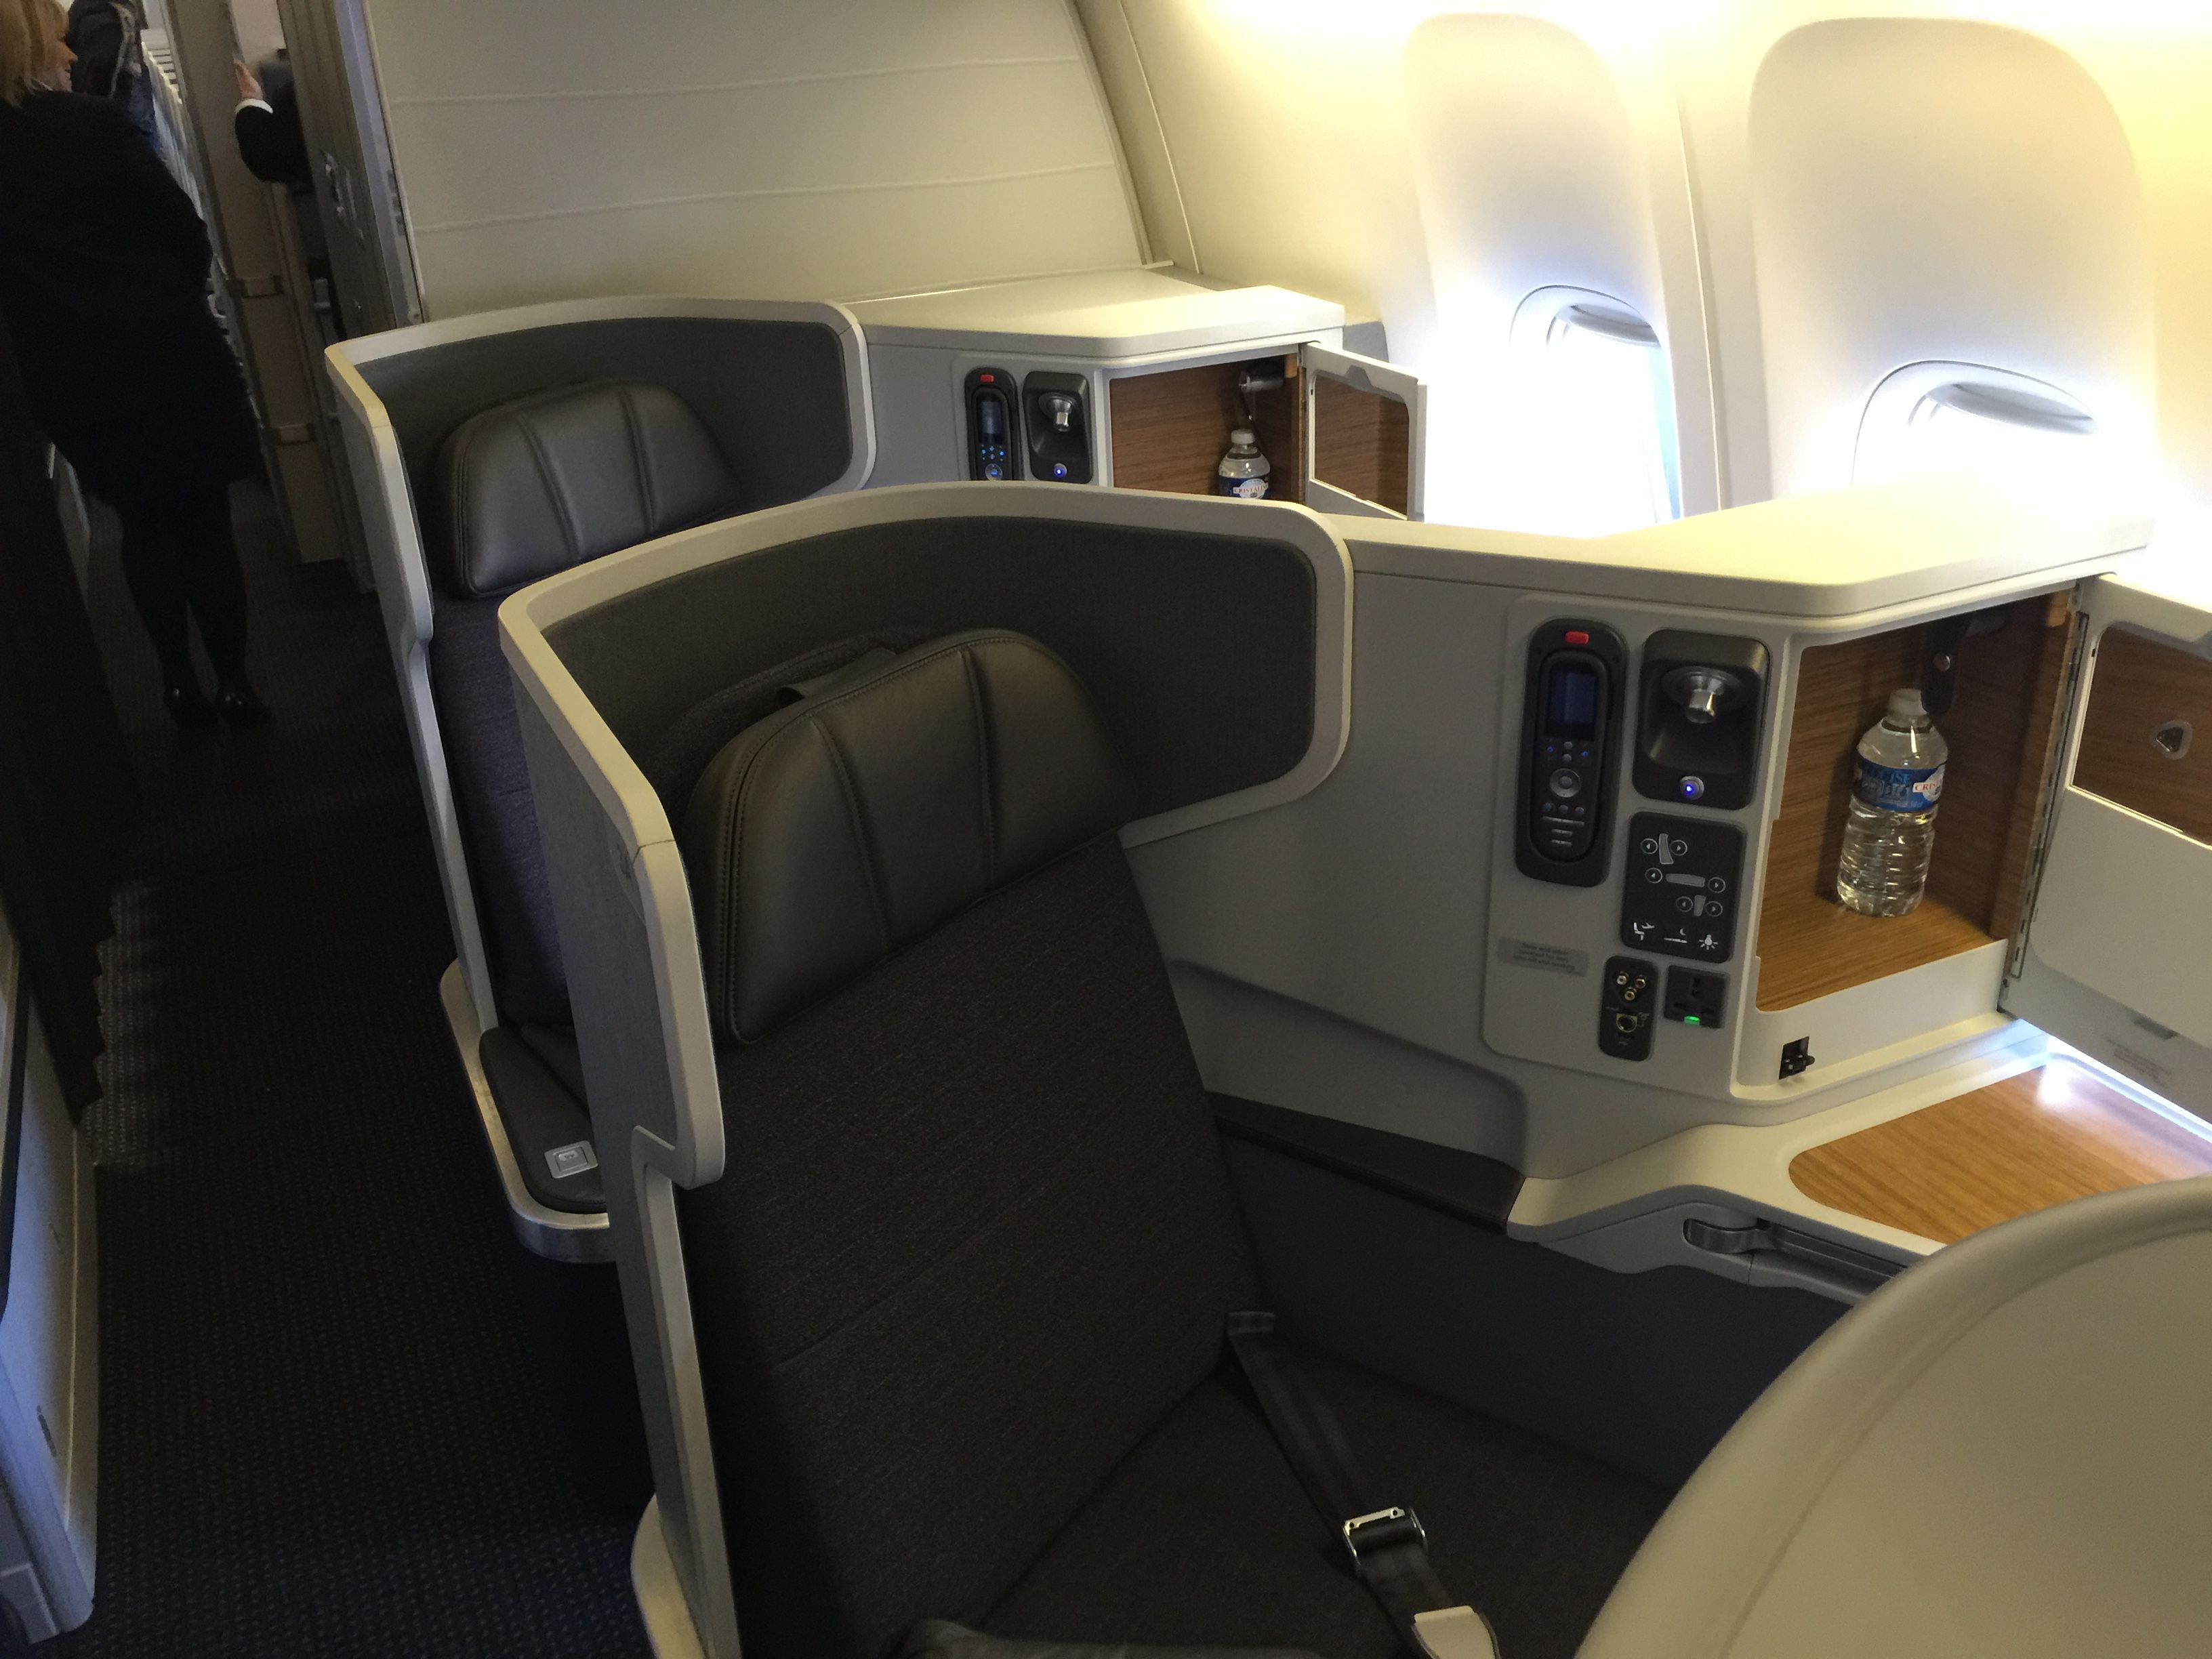 You can't sit in first or business class unless you pay a lot of money. - http://theforwardcabin.com/2015/01/02/cant-sit-first-business-class-unless-pay-lot-money/